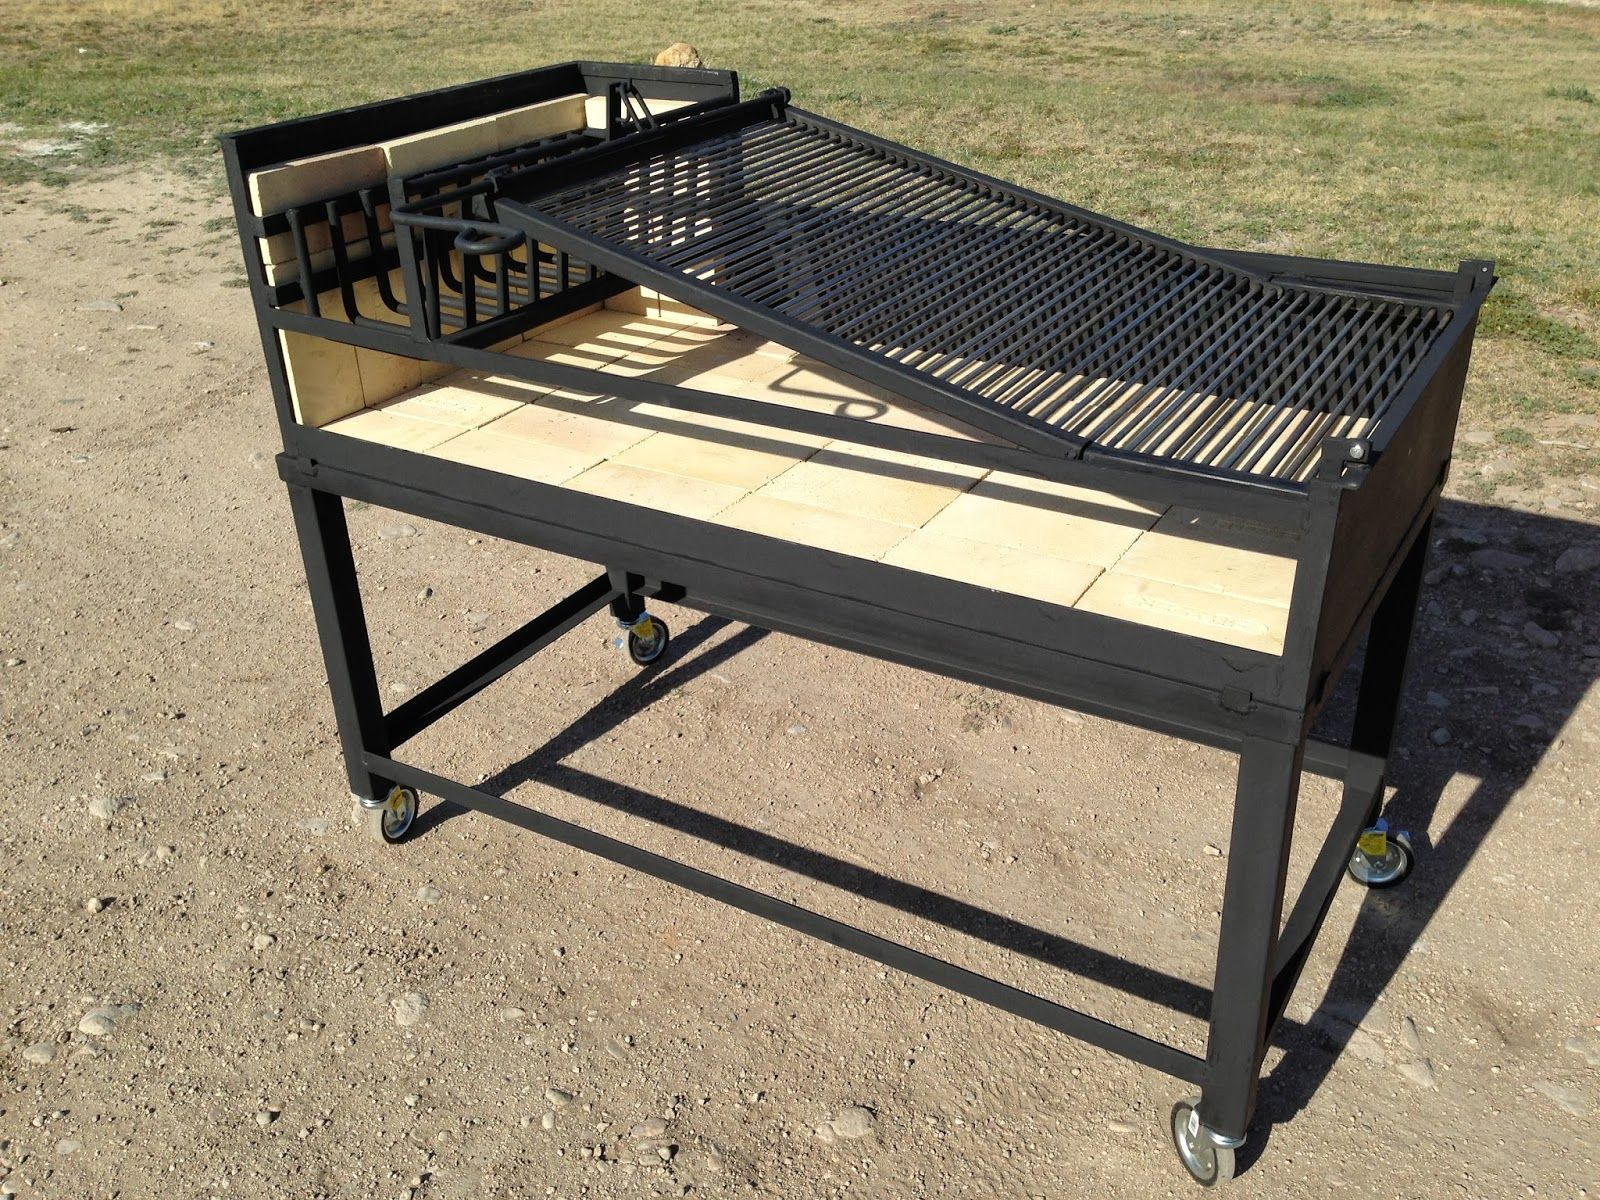 Diy Argentine Grill Plans Home Ideas Outdoor Kitchen Bars Charcoal Grill Argentine Grill